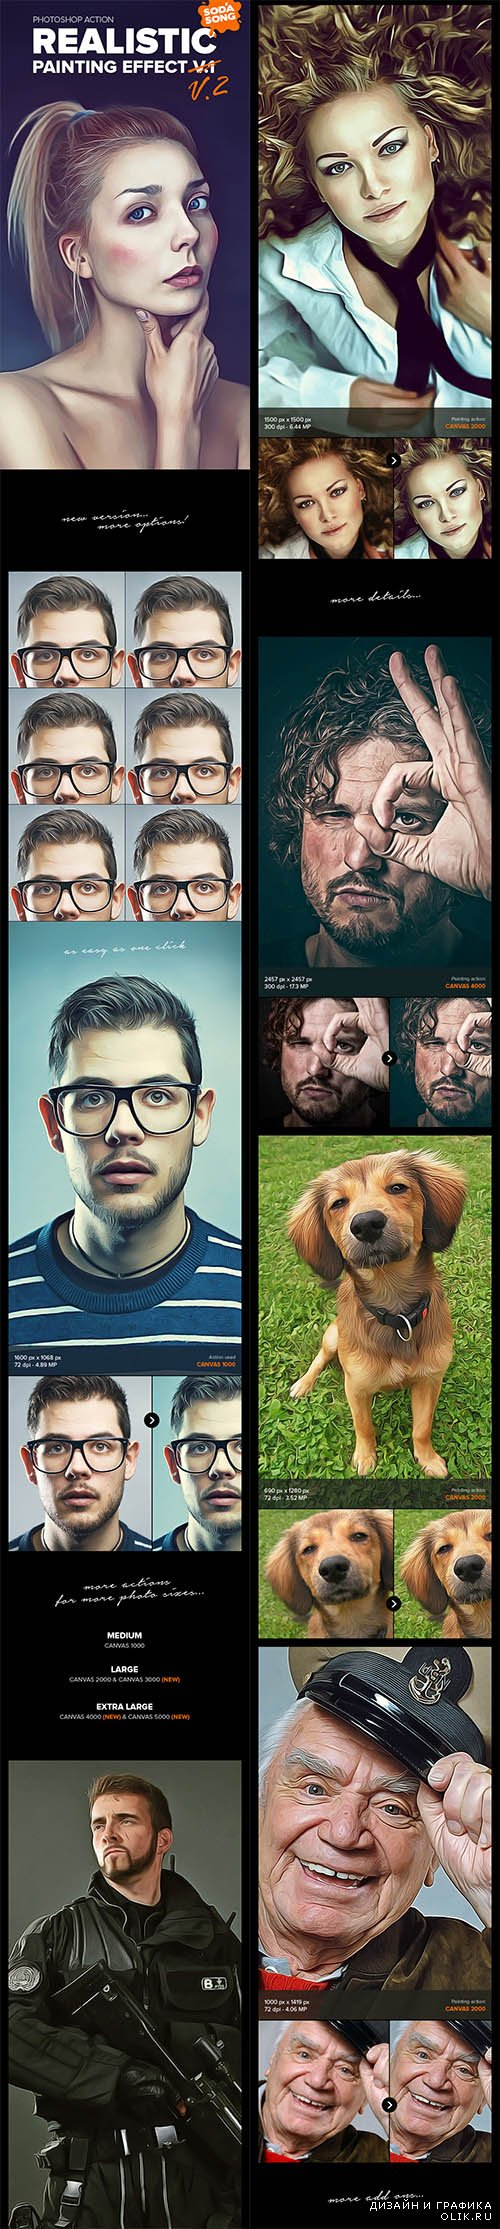 GraphicRiver - Realistic Painting Effect V2 - Painting Action 9896793